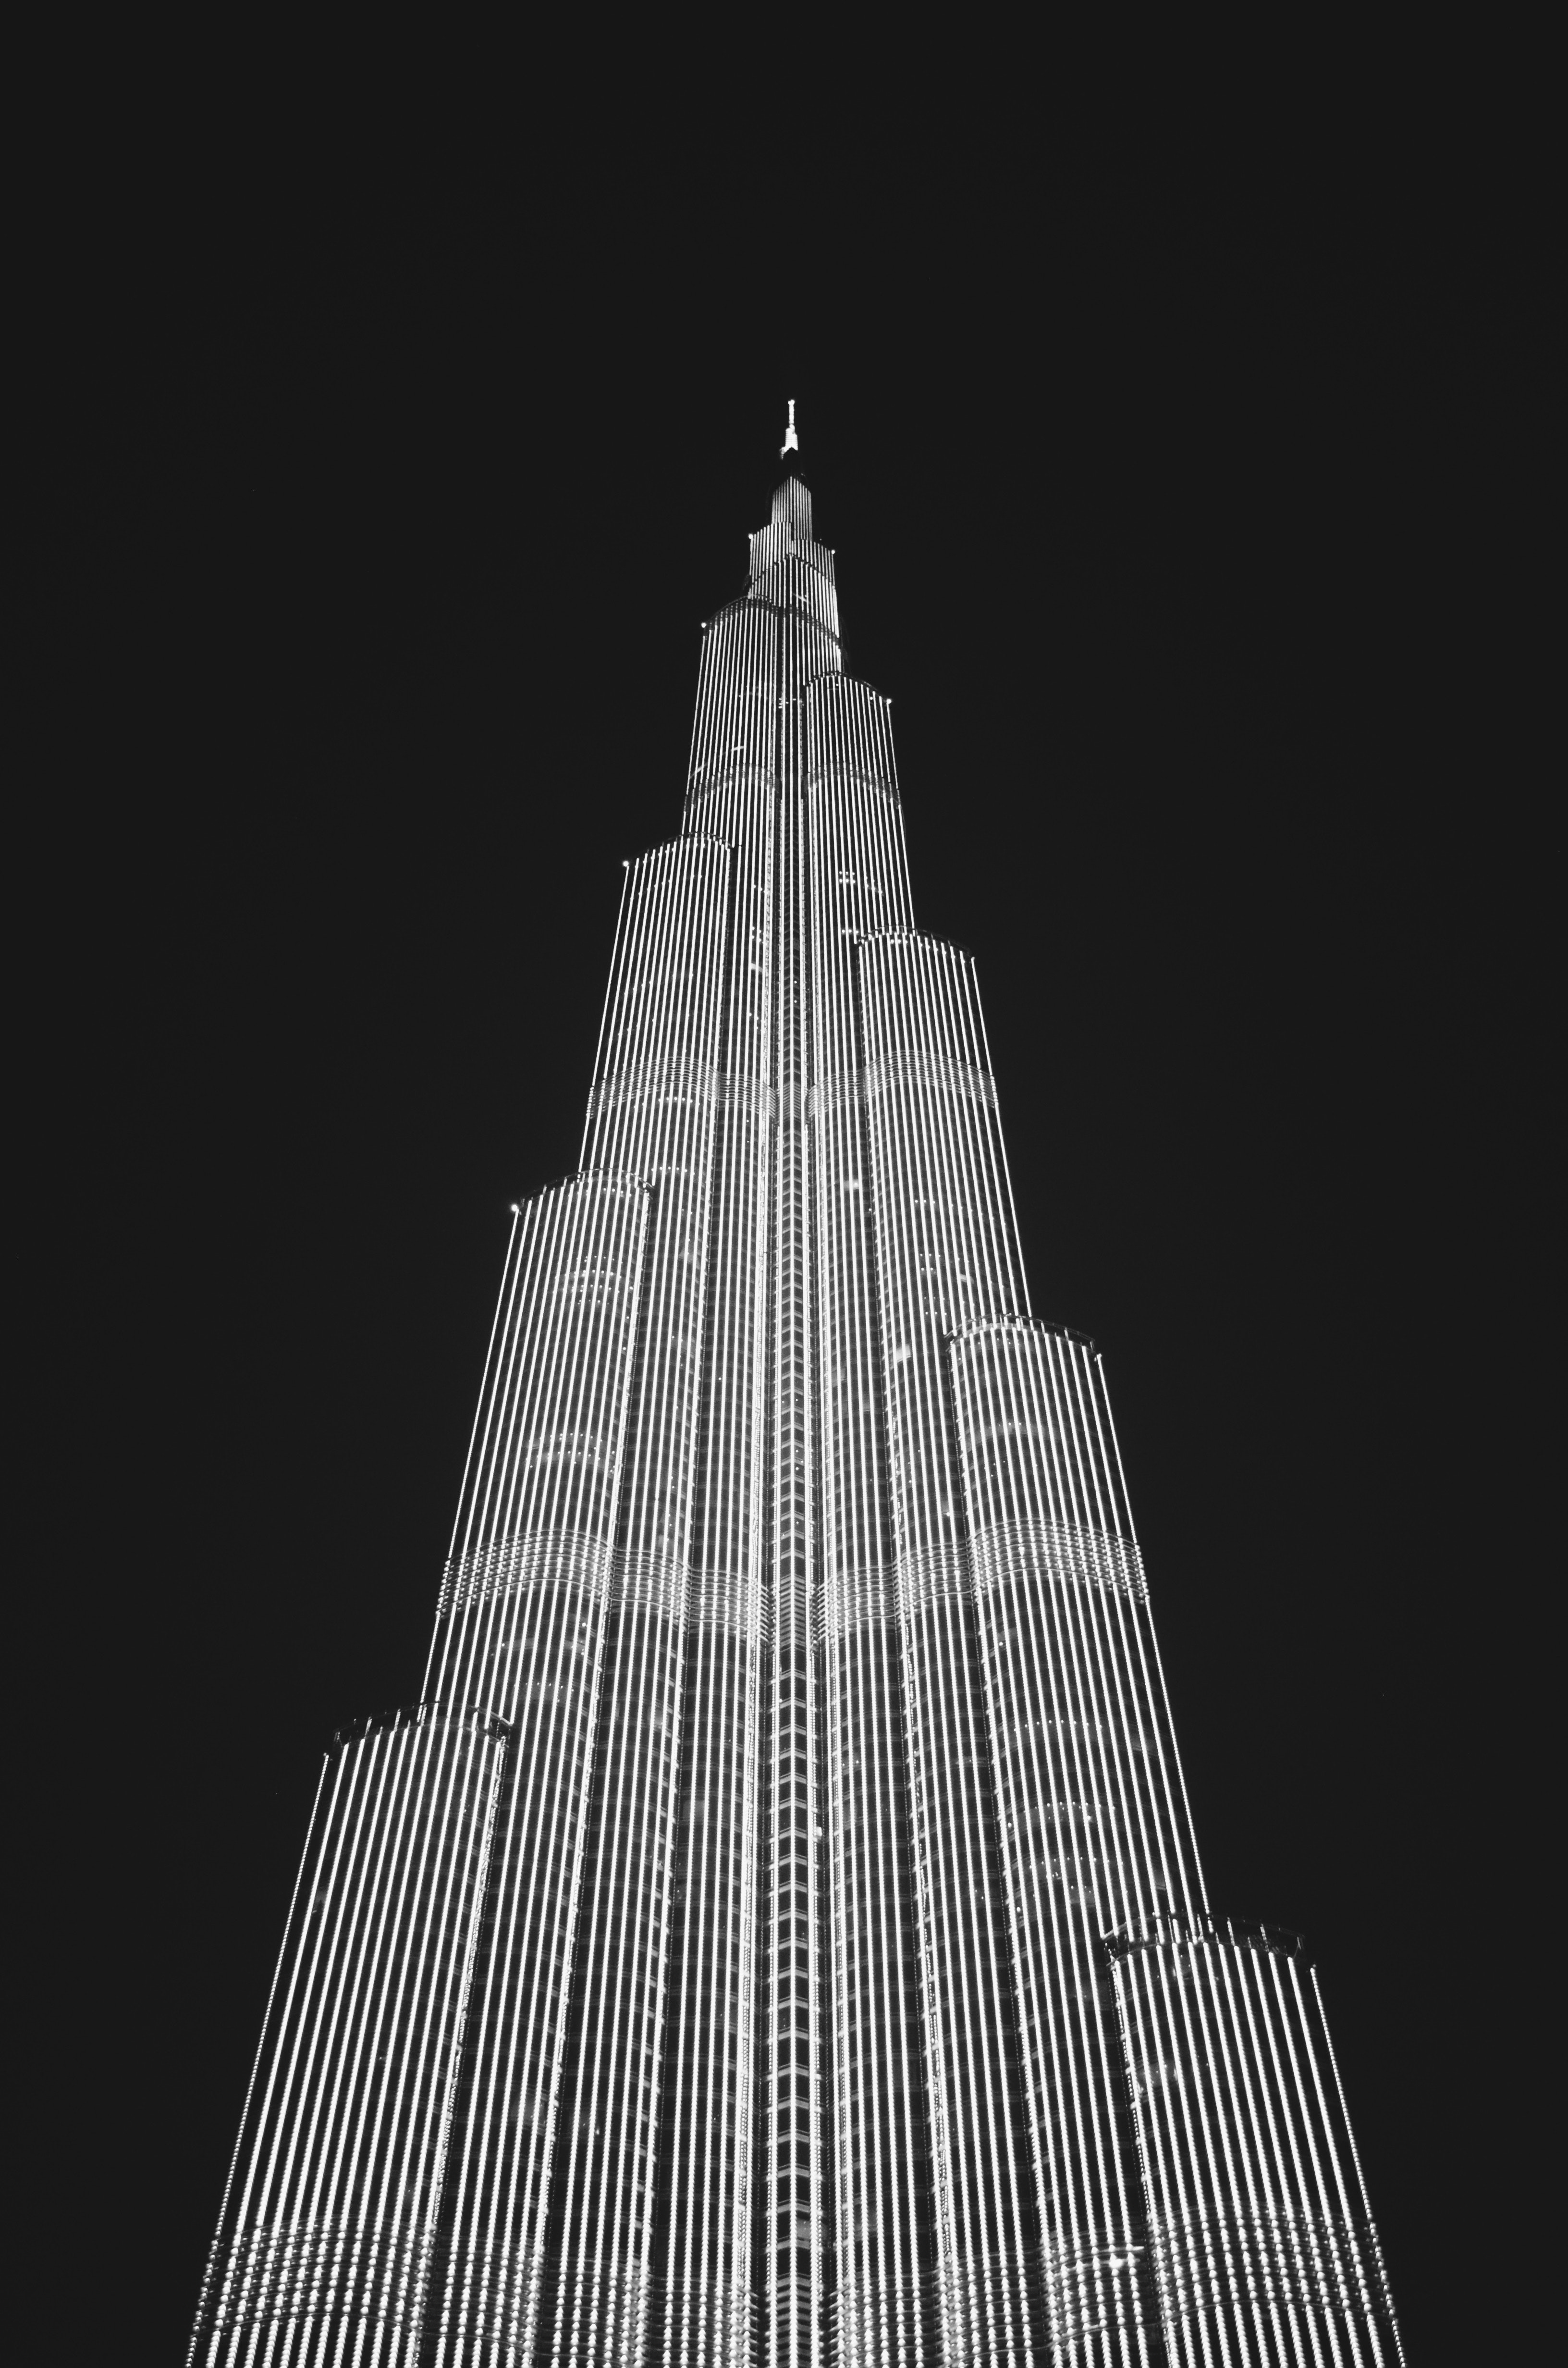 Low Angle View of Skyscraper Against Sky at Night, Architecture, Tower, Tallest, Skyscraper, HQ Photo